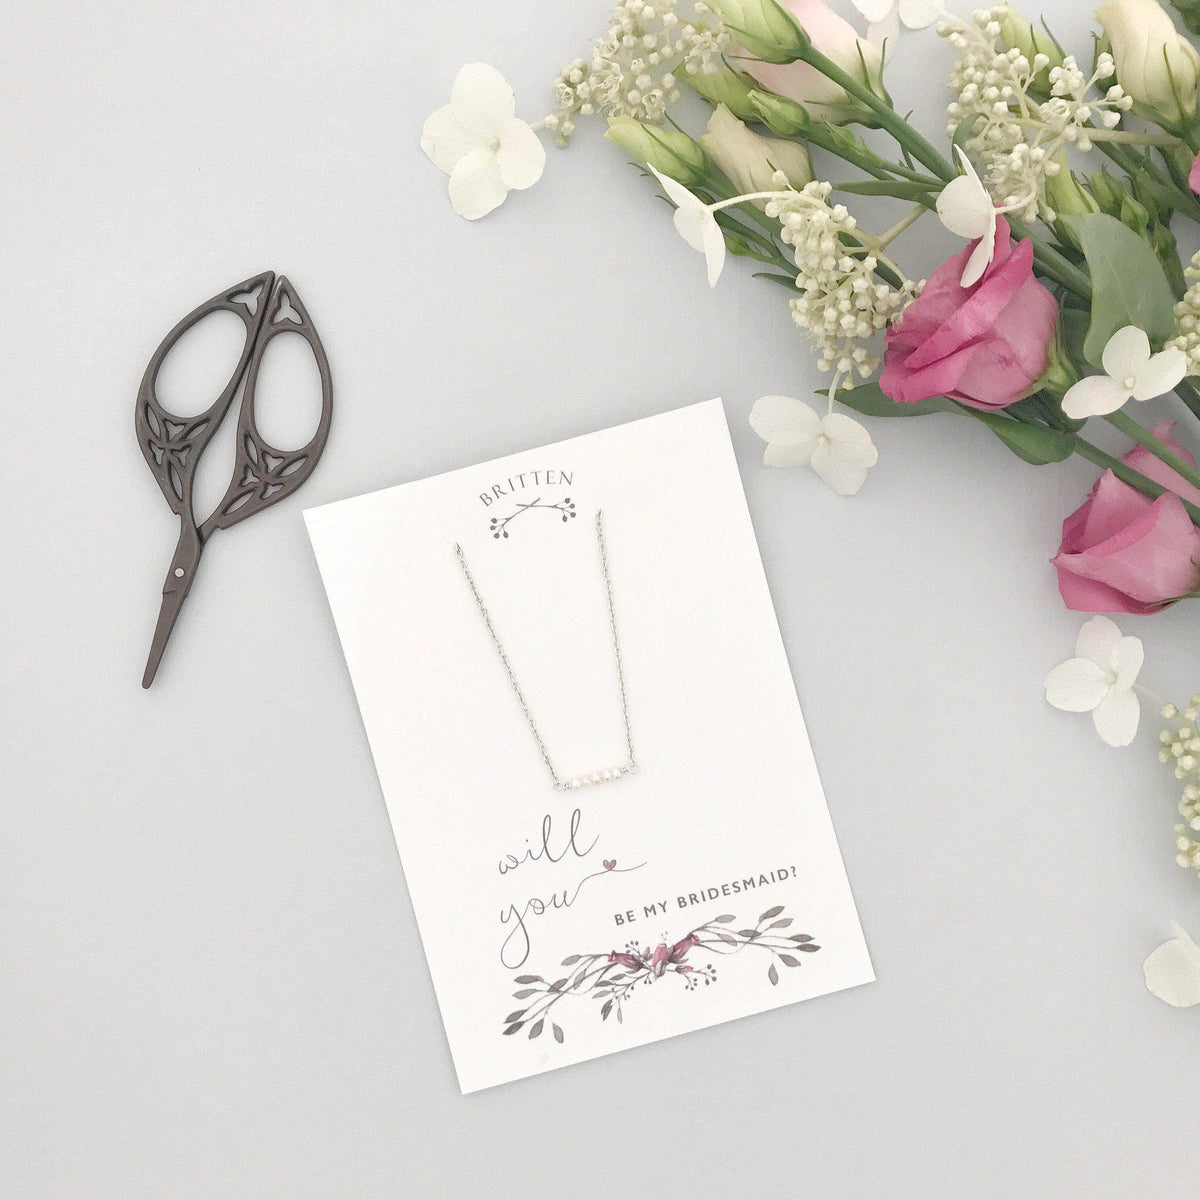 Will you be my bridesmaid gift necklace - 'Freya' in silver